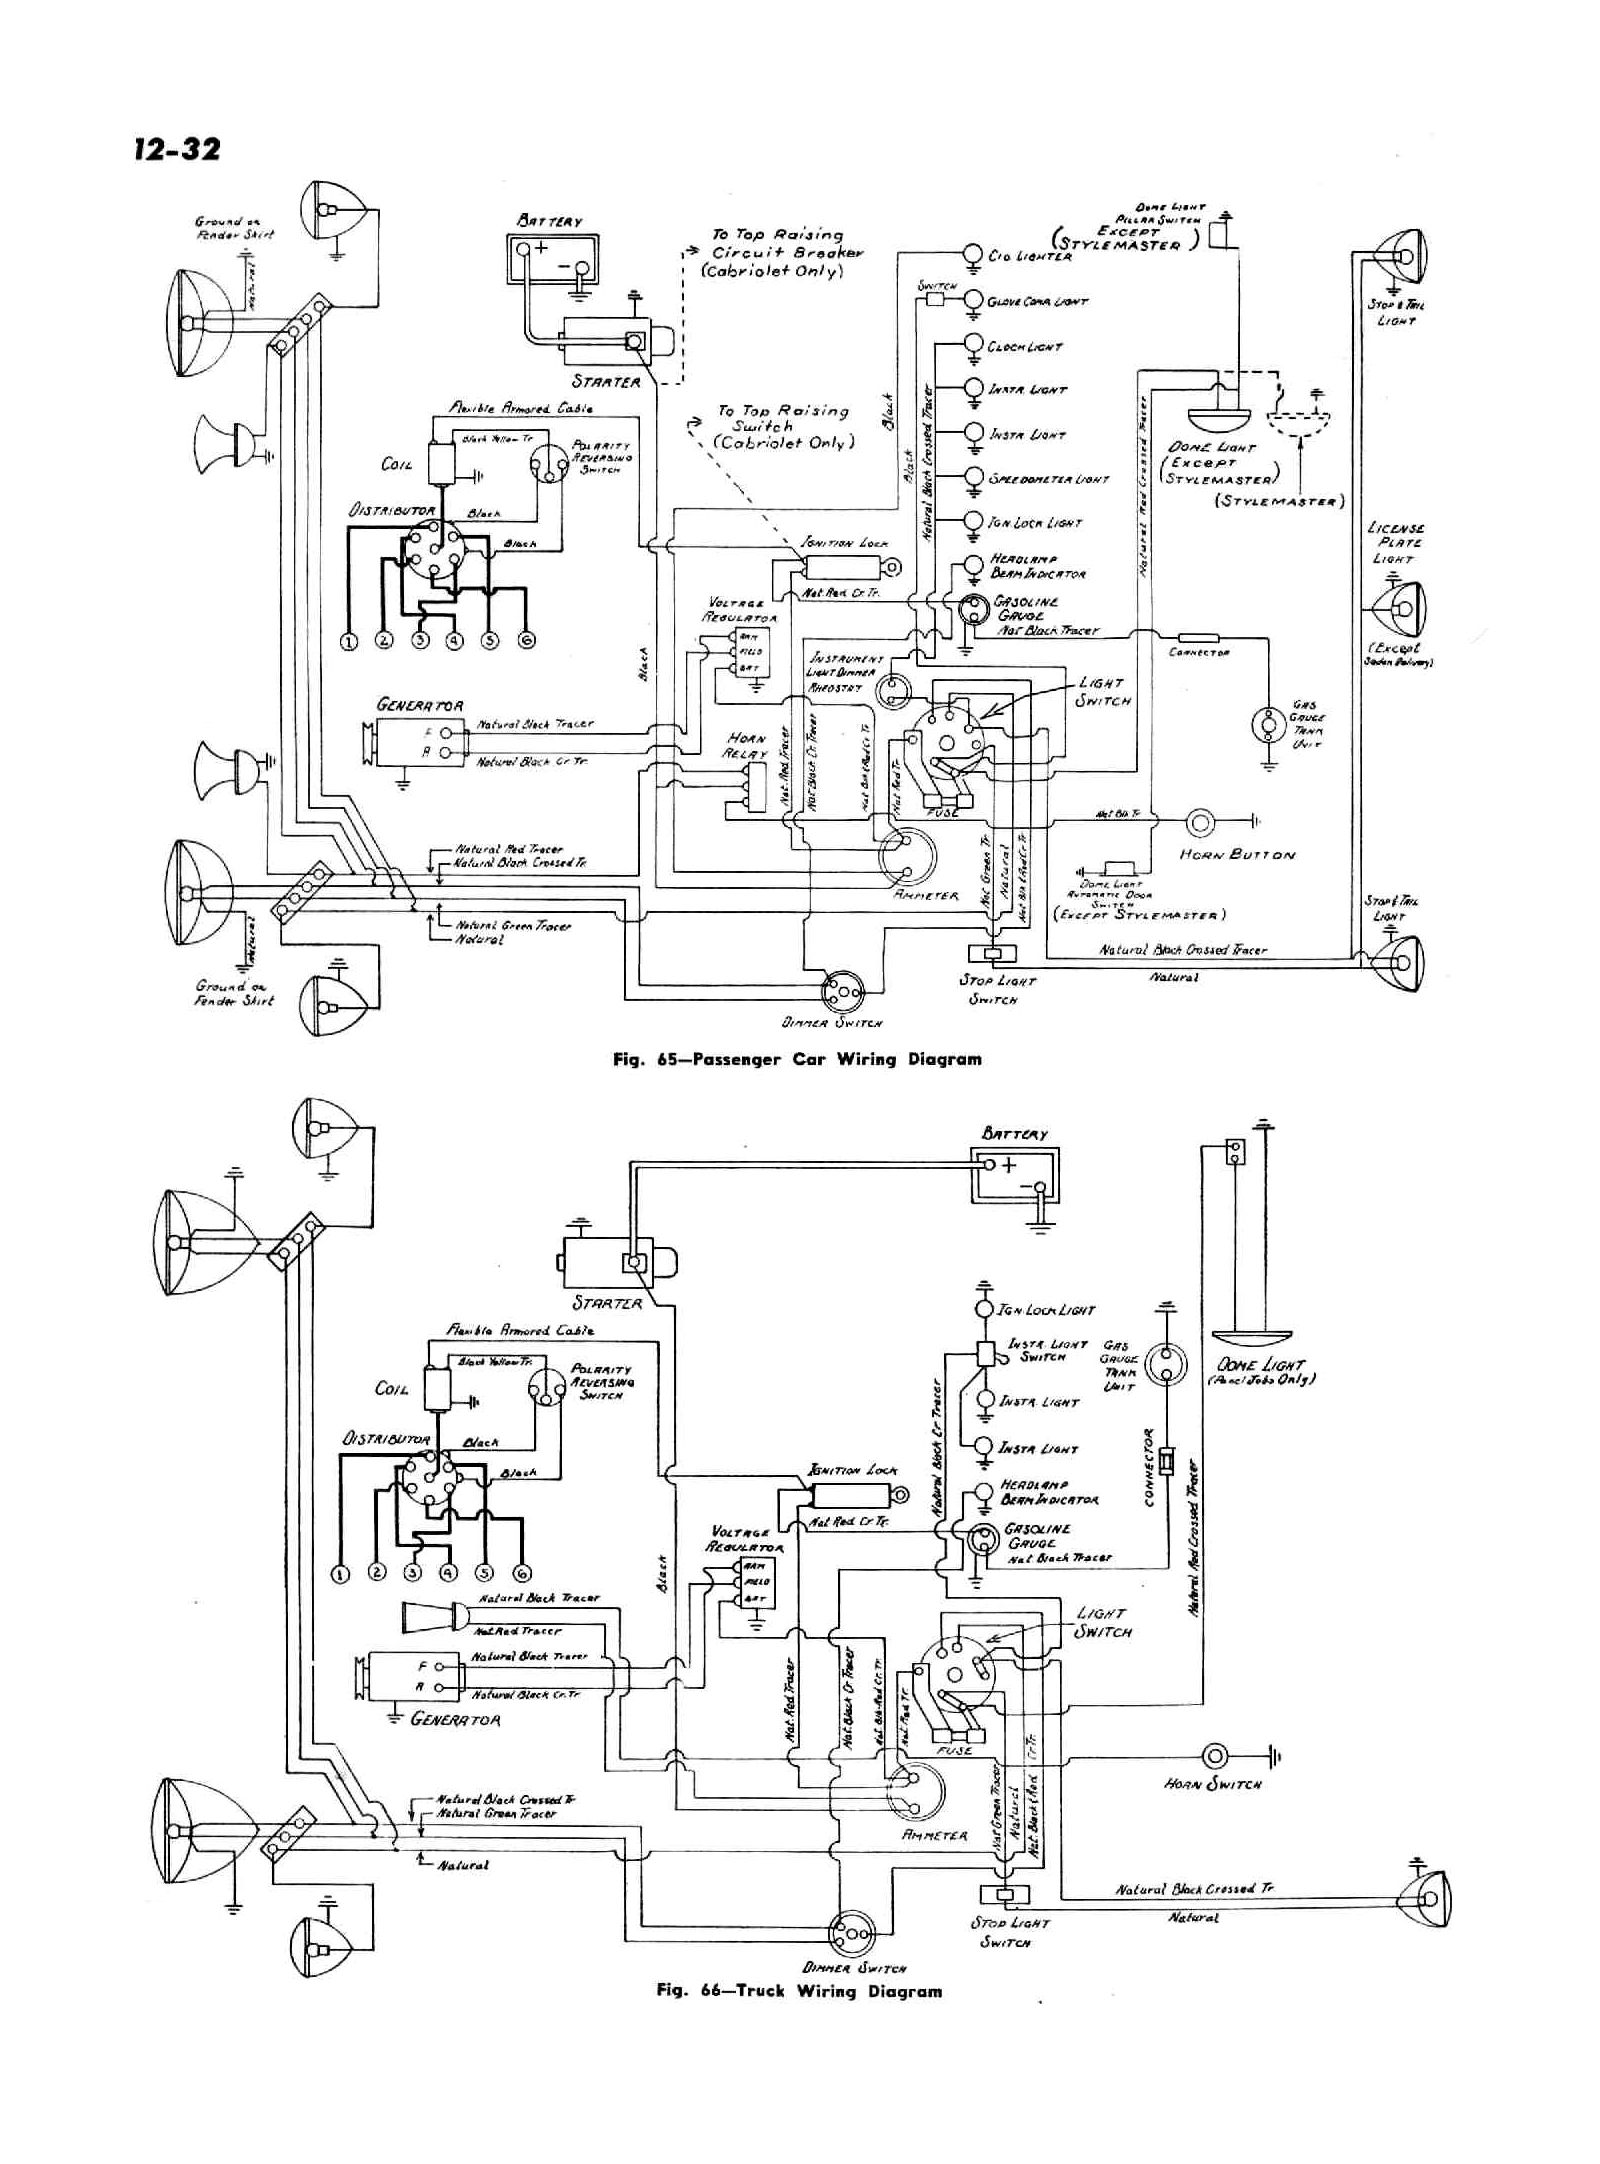 Dodge D100 Wiring Diagram